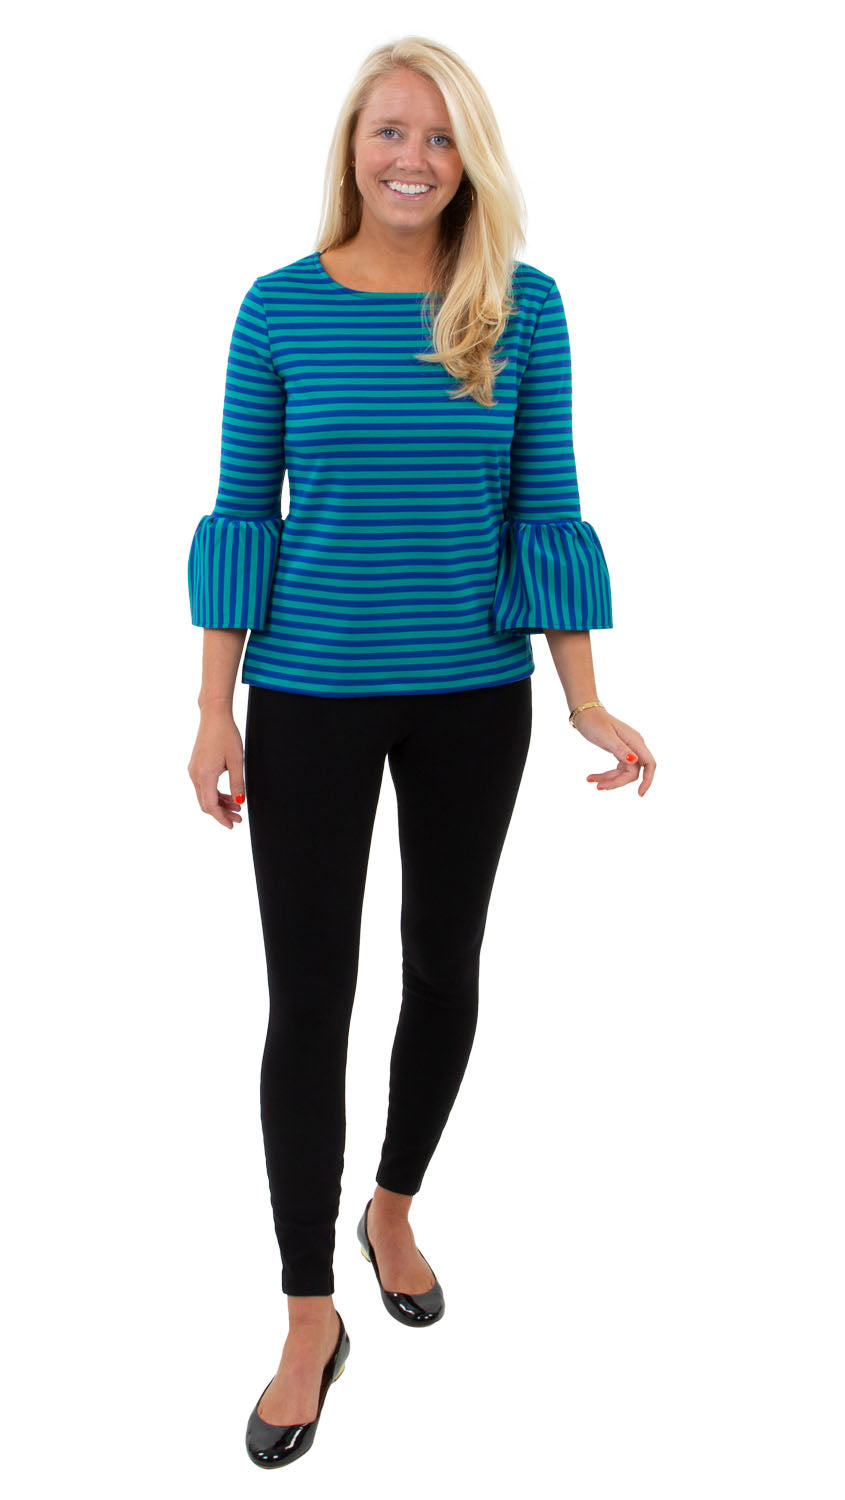 Haley Top- Double Knit Ponte Stripes- Green/Navy FINAL SALE